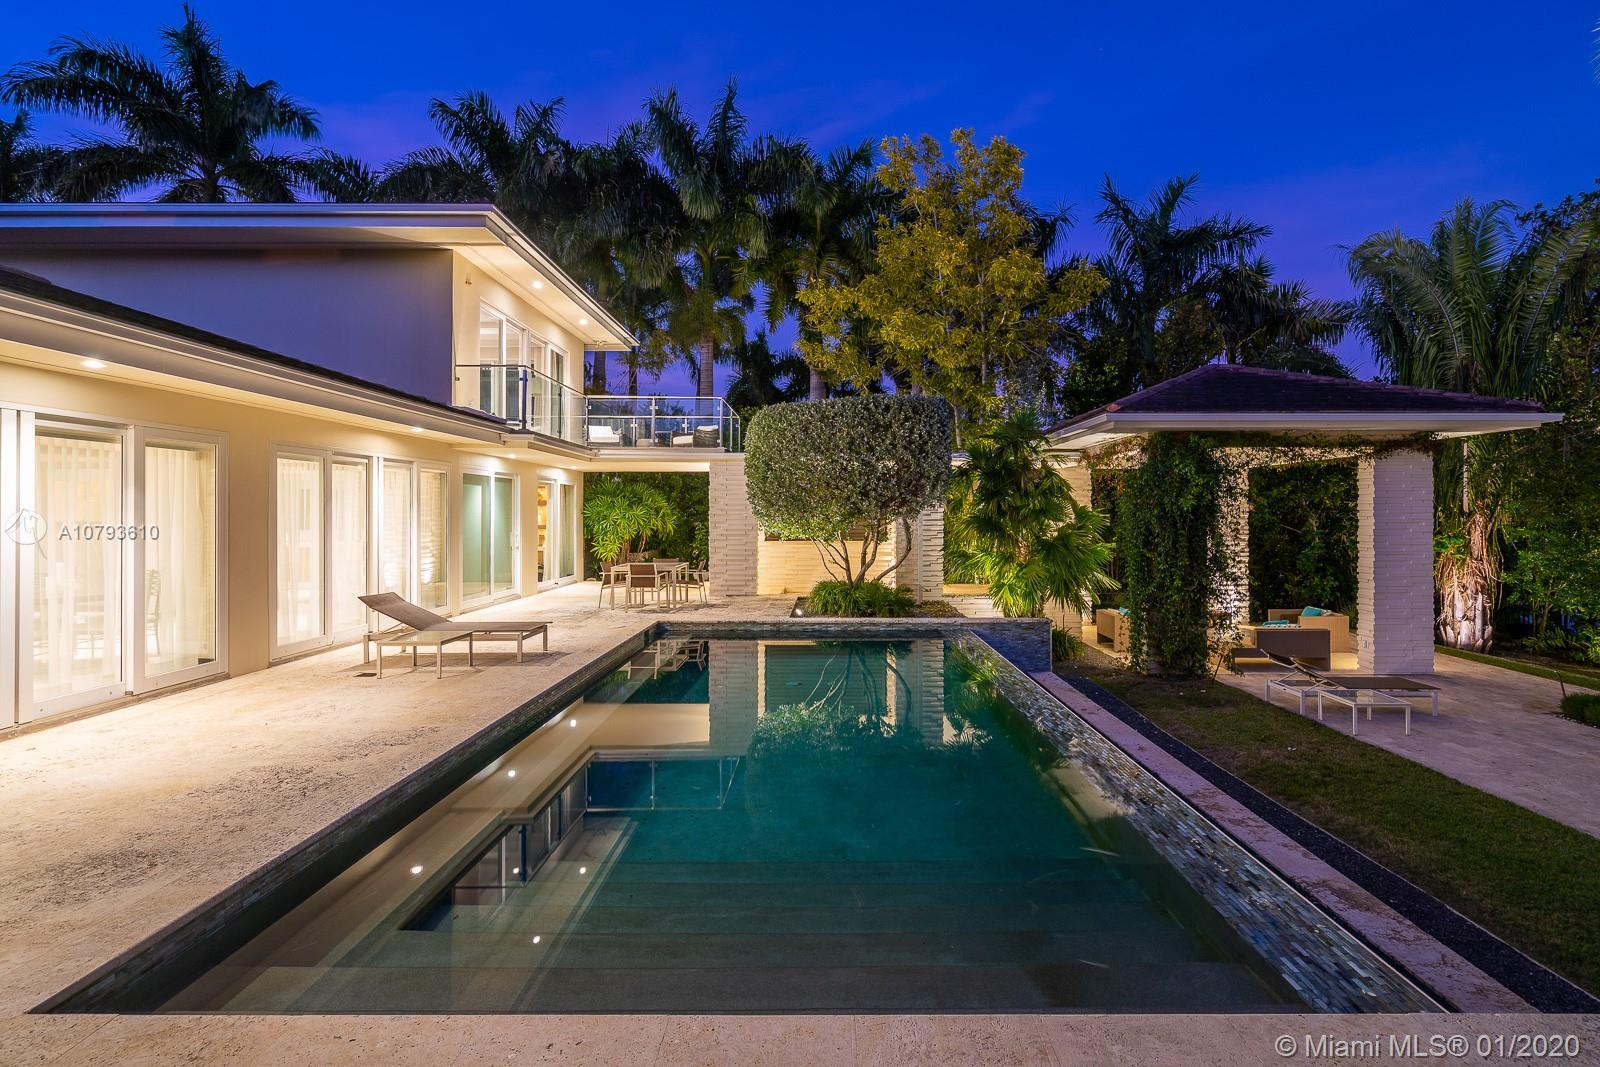 Inspired by the beauty of Casa de Campo, one of Cocoplum's loveliest homes has just become available